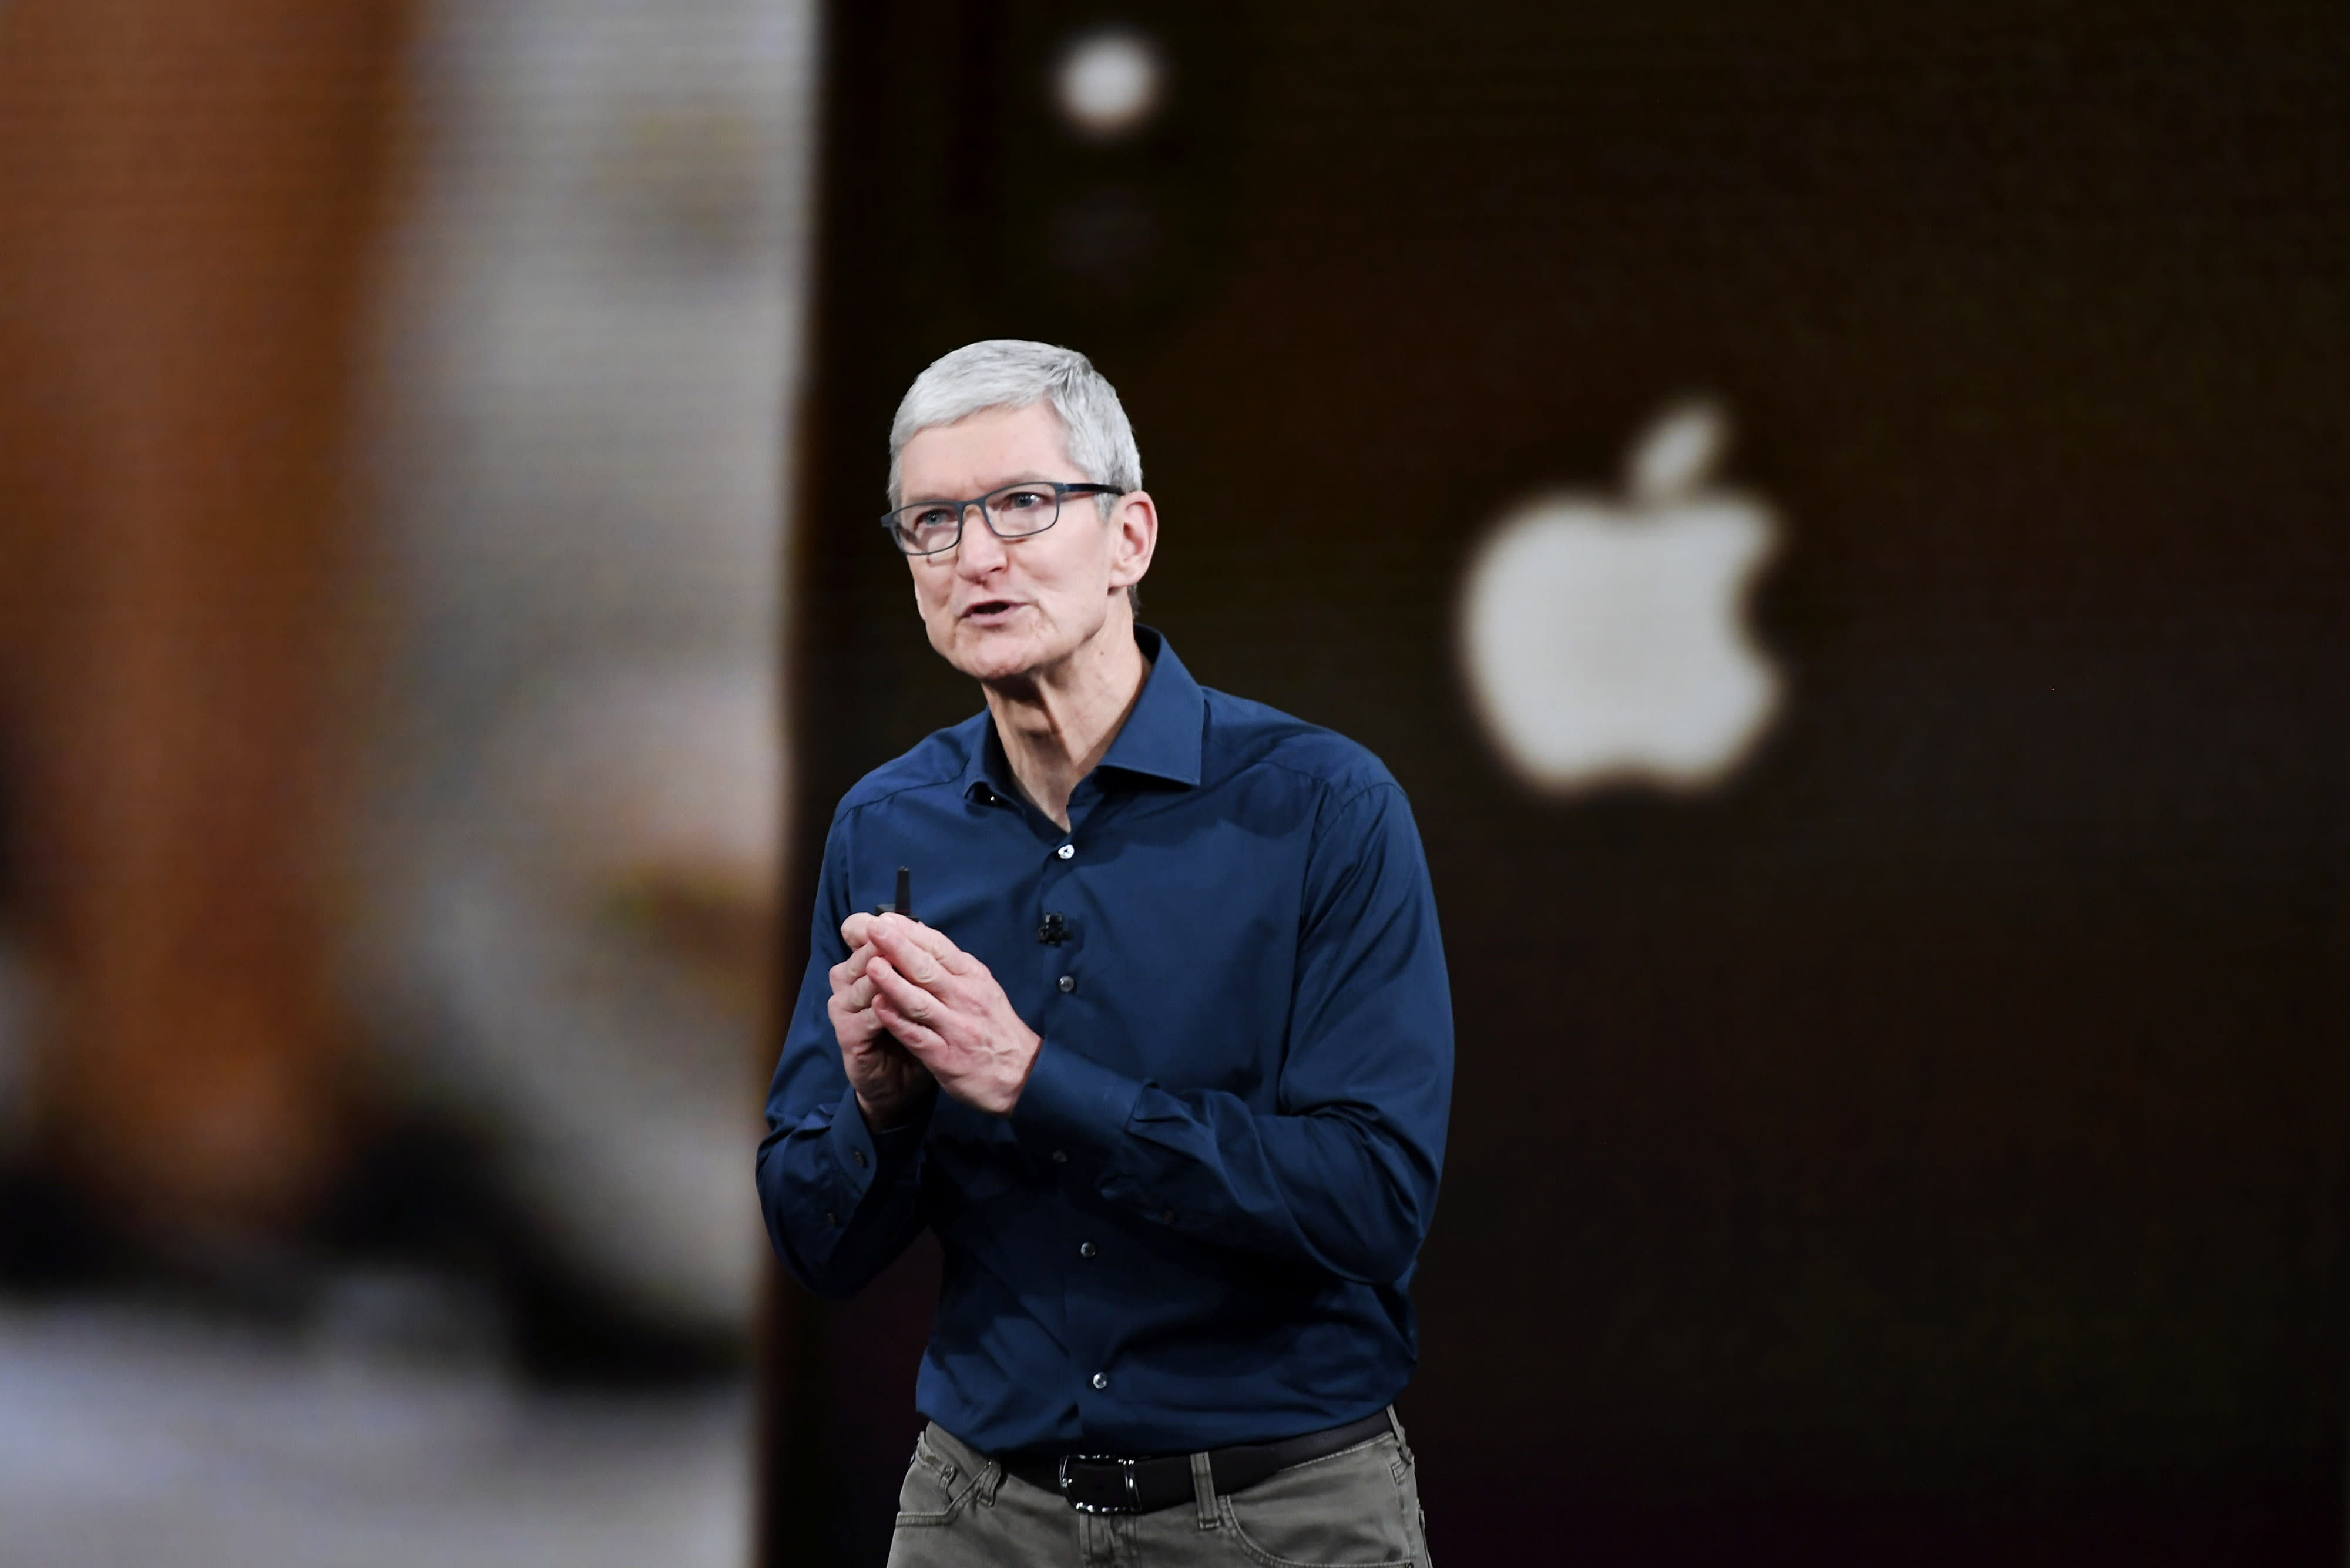 Apple CEO Tim Cook: Technology companies need to take responsibility for chaos they create